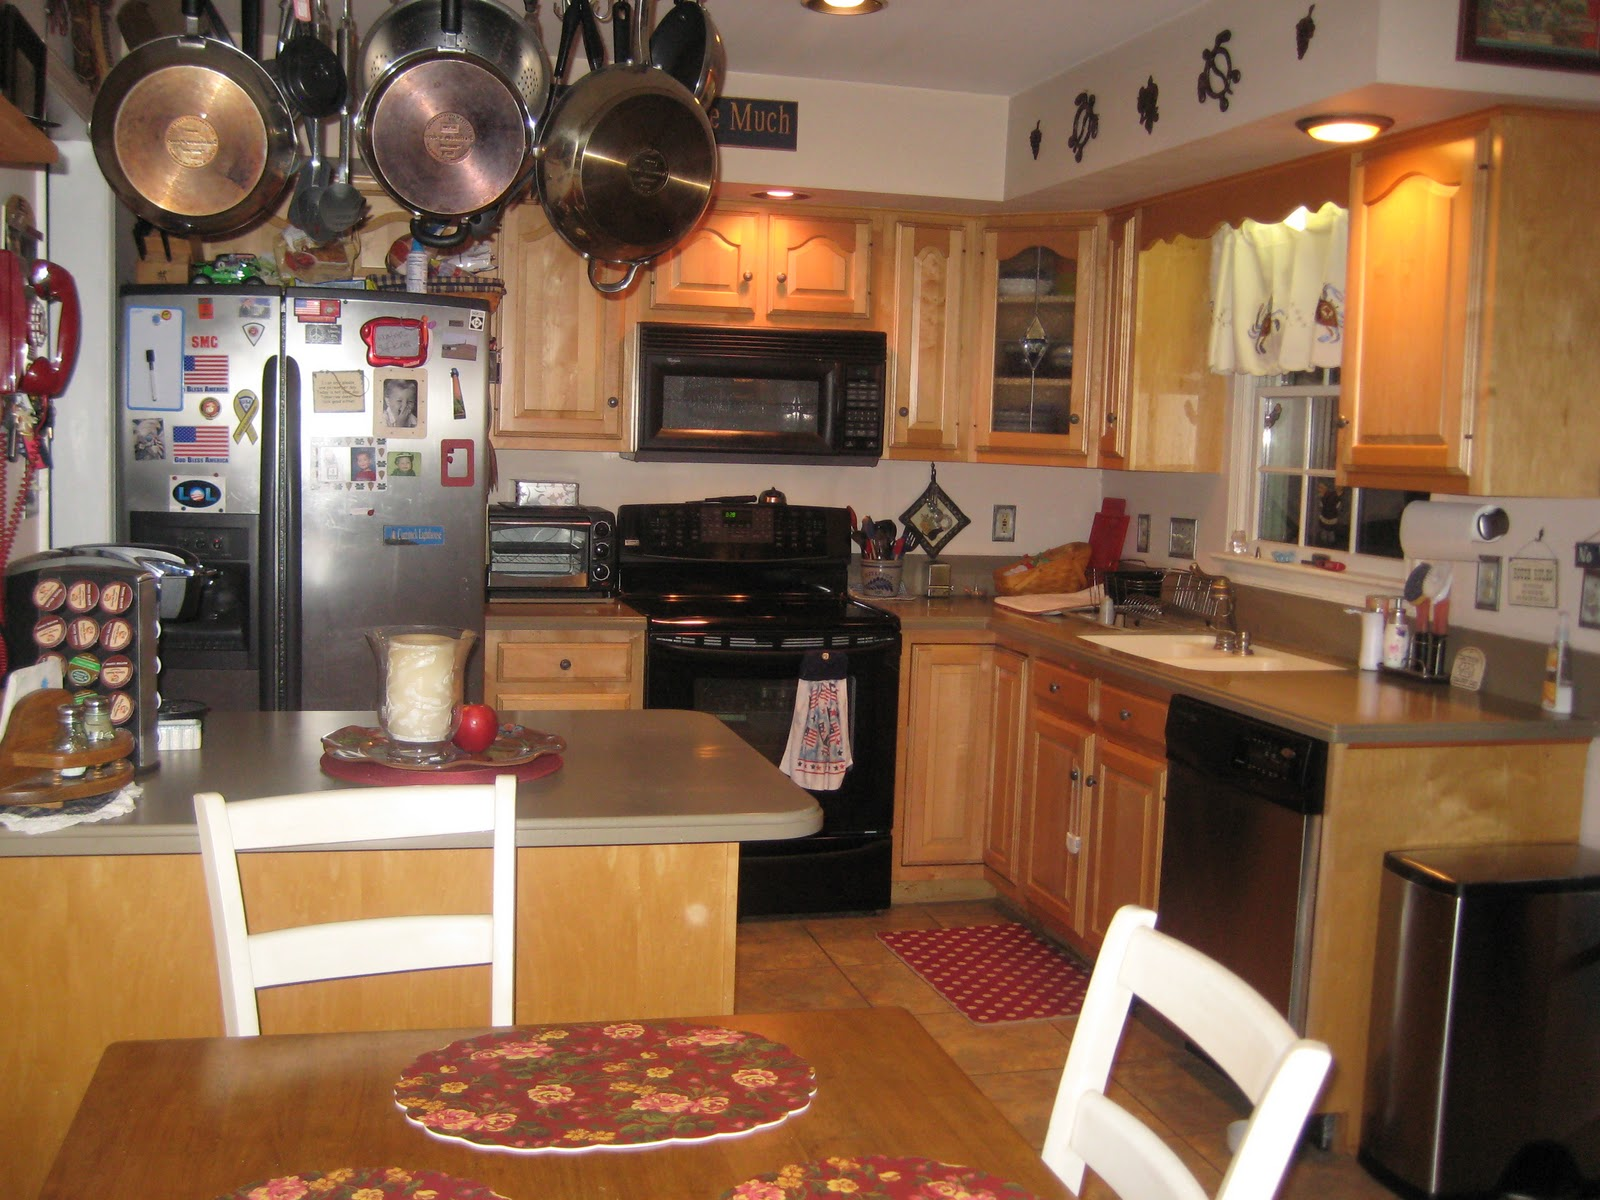 Before:  this kitchen is too small for the family, and they want to move the breakfast table out into a new breakfast room with lots of glass and a cathedral ceiling.  The entire back wall of the kitchen will be removed to enlarge the kitchen into the addition also.